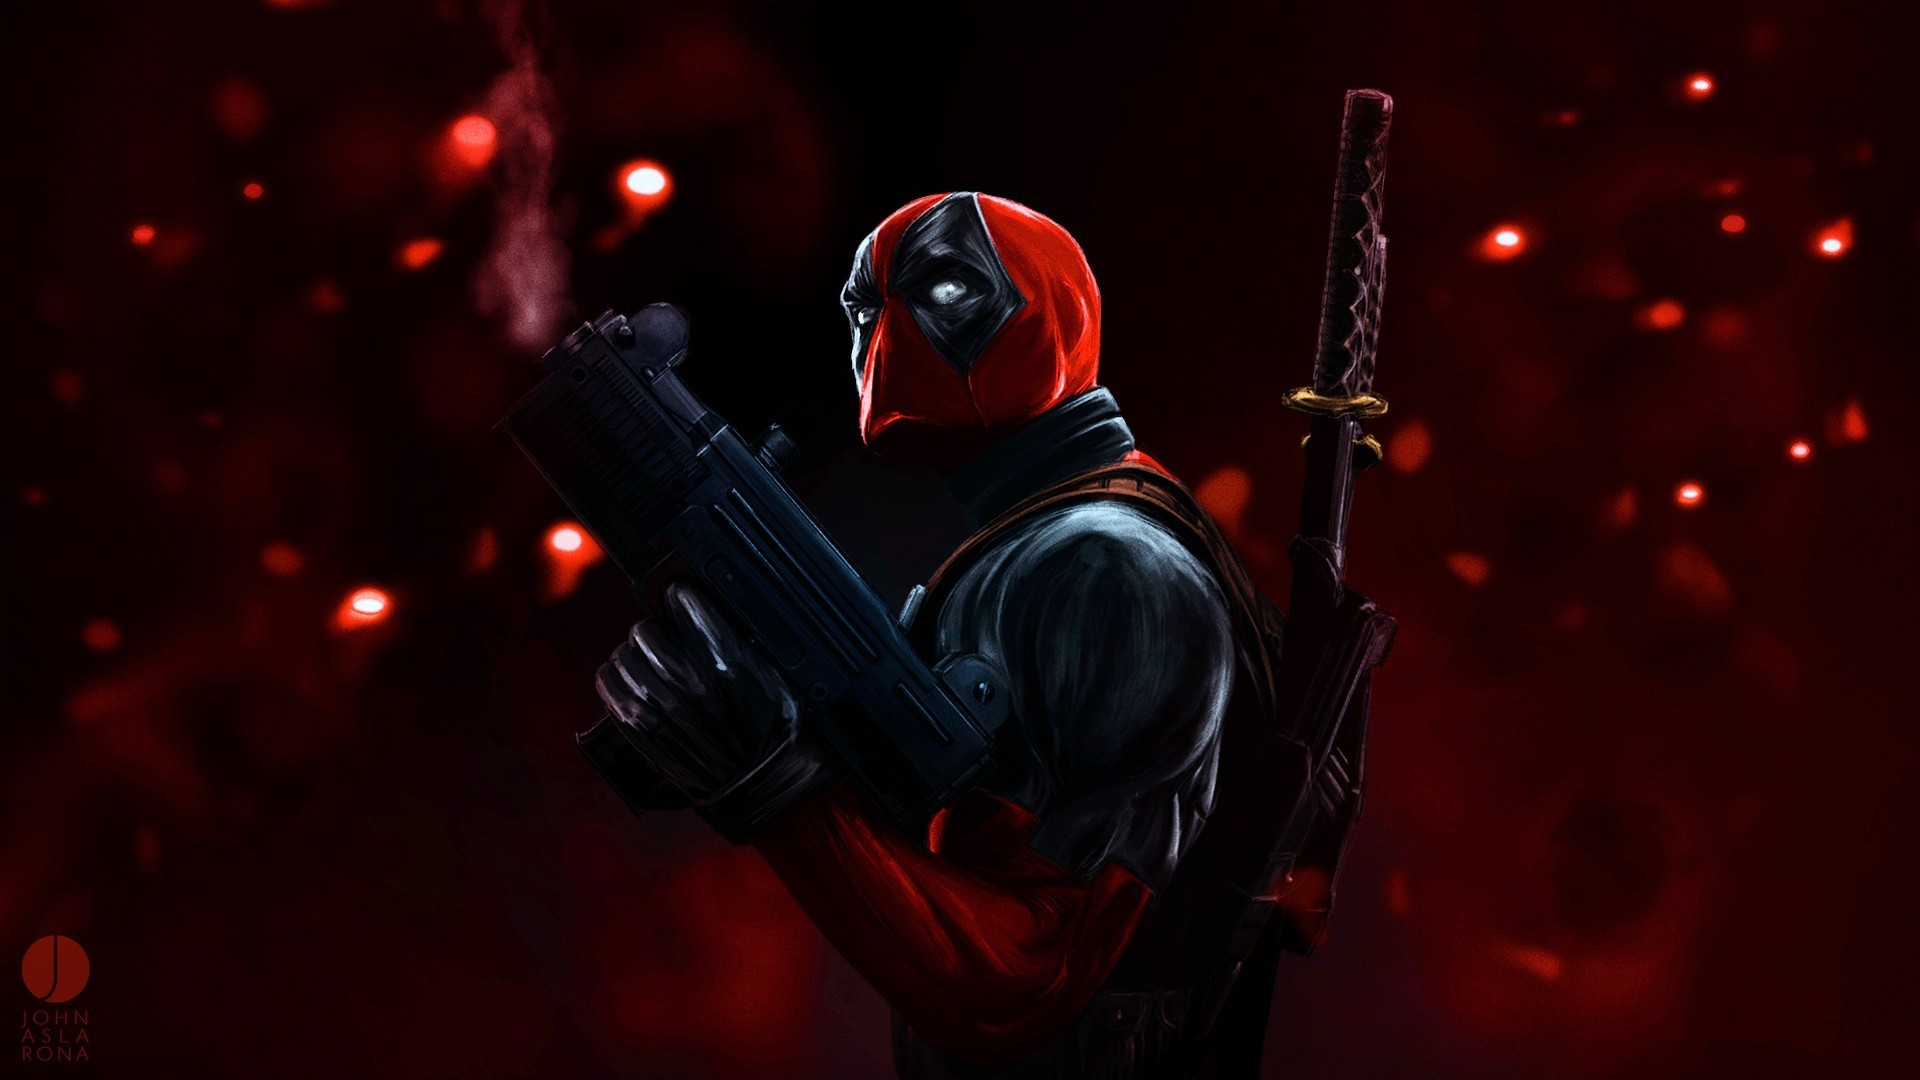 Full HD Wallpaper deadpool katana hero mask gun Desktop 1920x1080